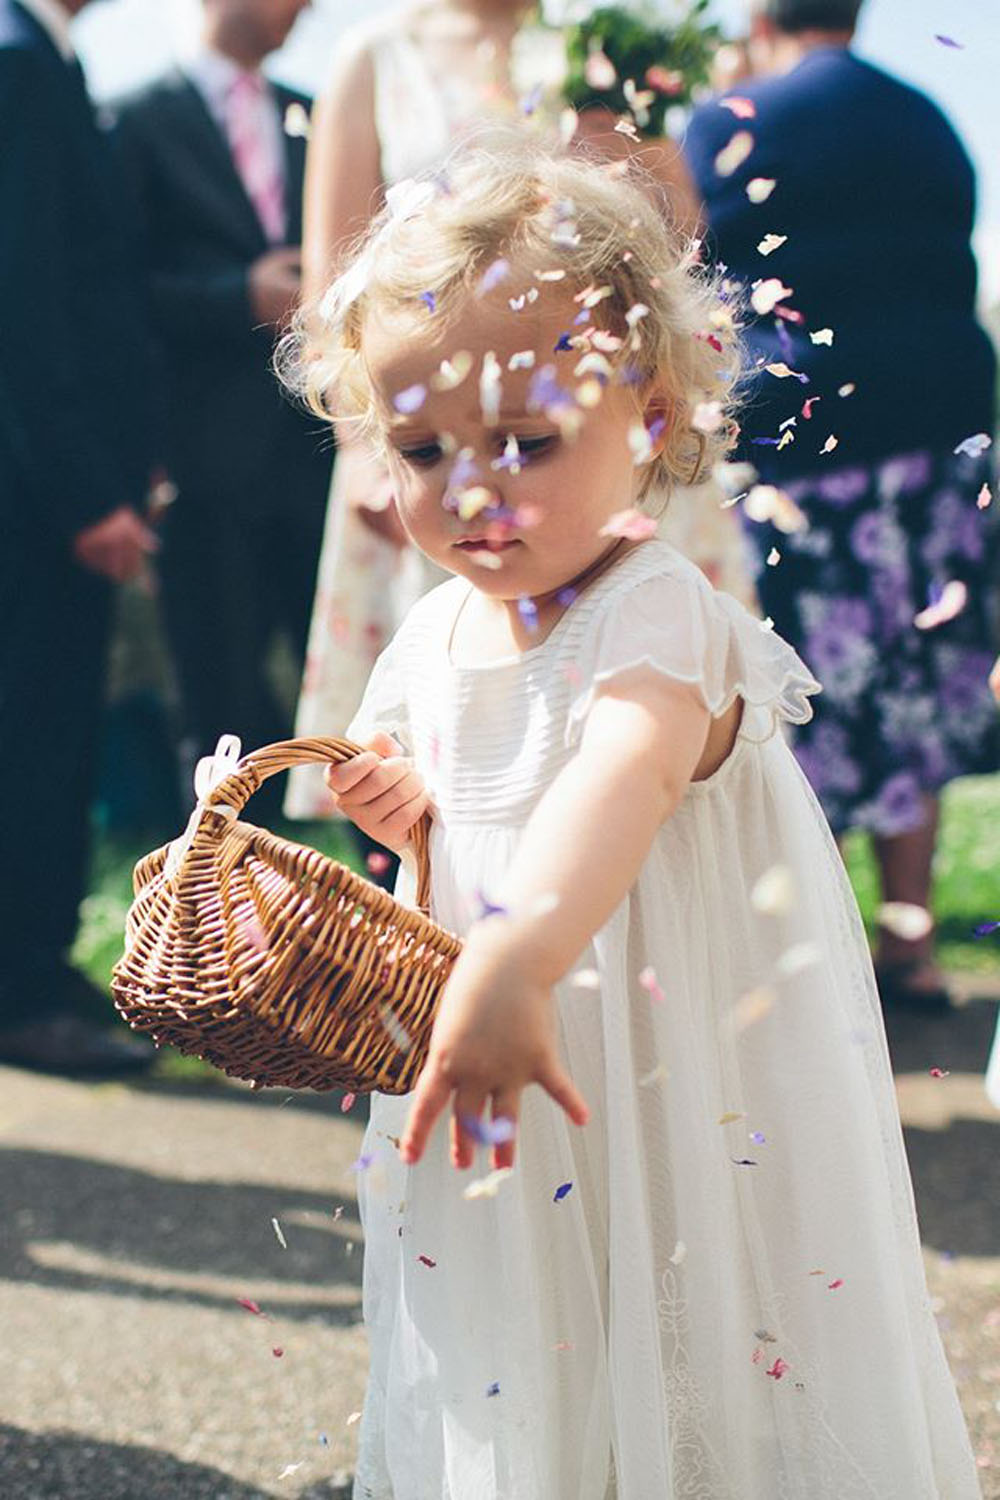 Petal Confetti - Delphiniums, Wildflowers and Lavender - bridesmaid with confetti